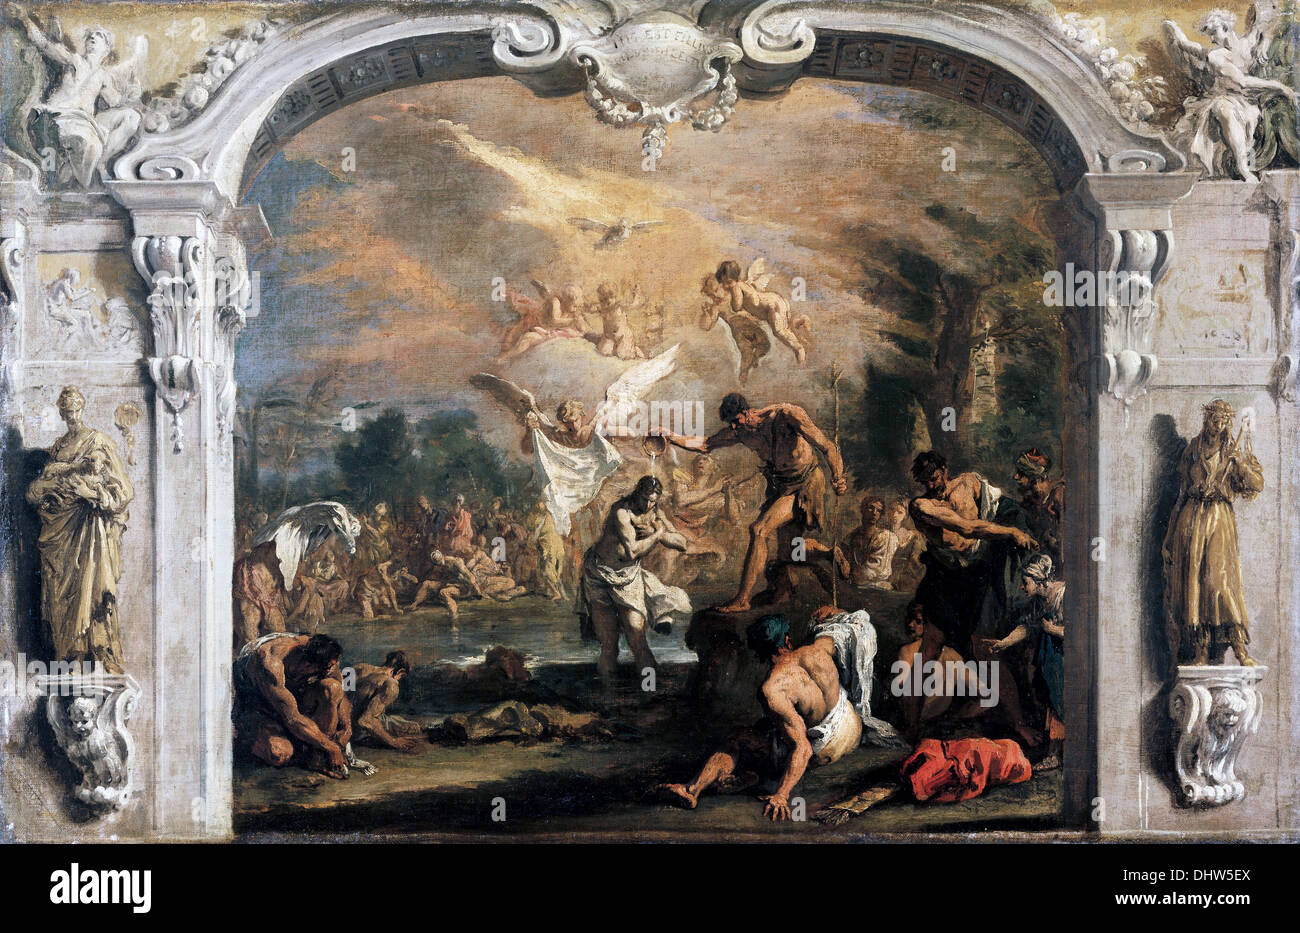 The Baptism of Christ - by Sebastiano Ricci, 1700 Stock Photo